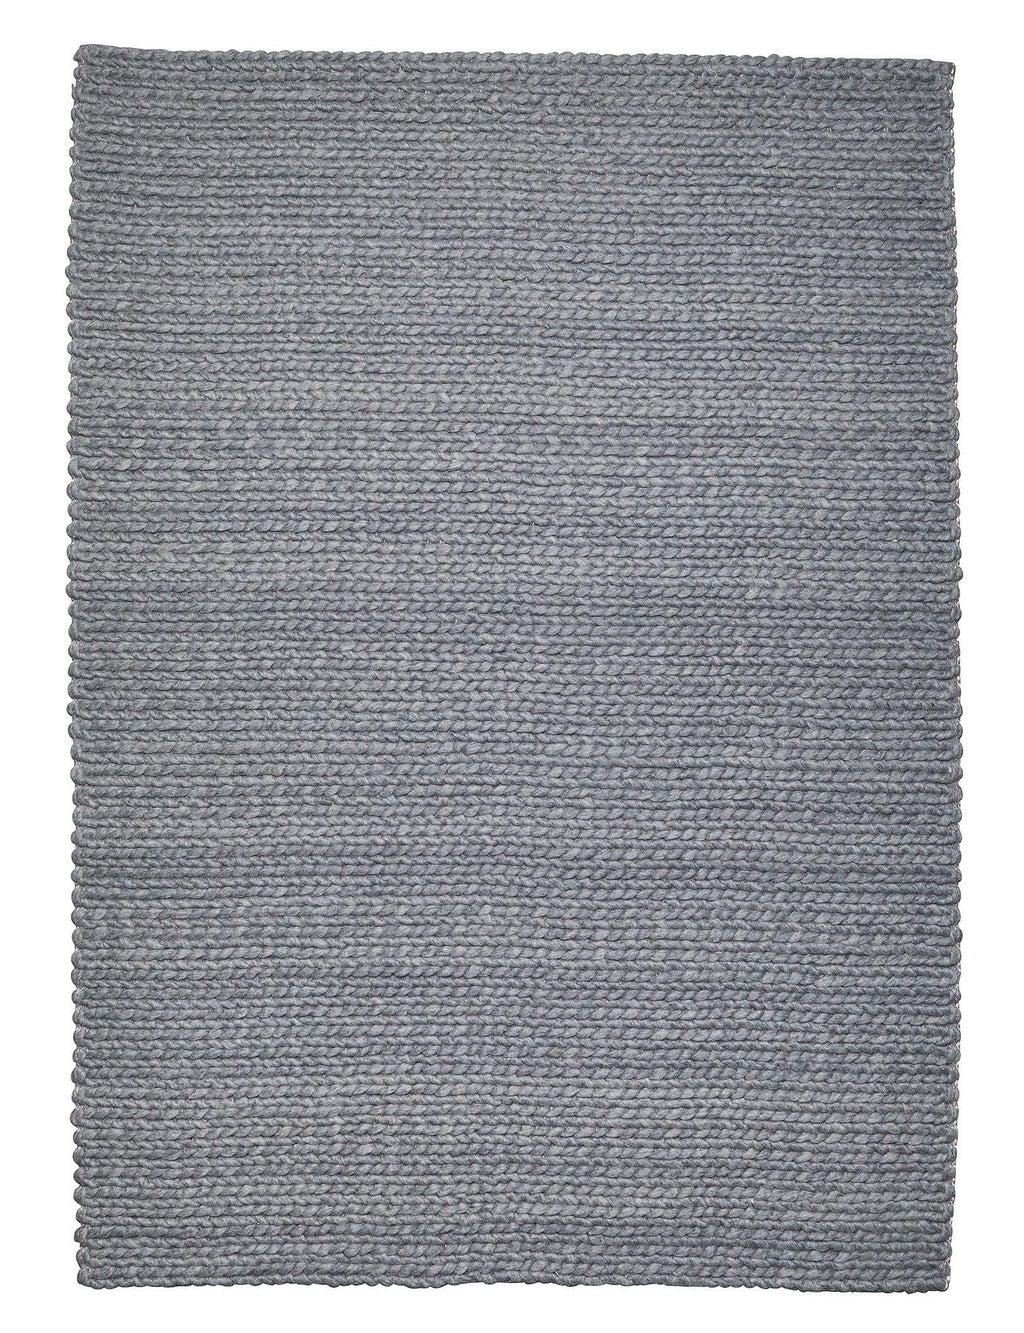 Aliya Grey Braided Wool Rug